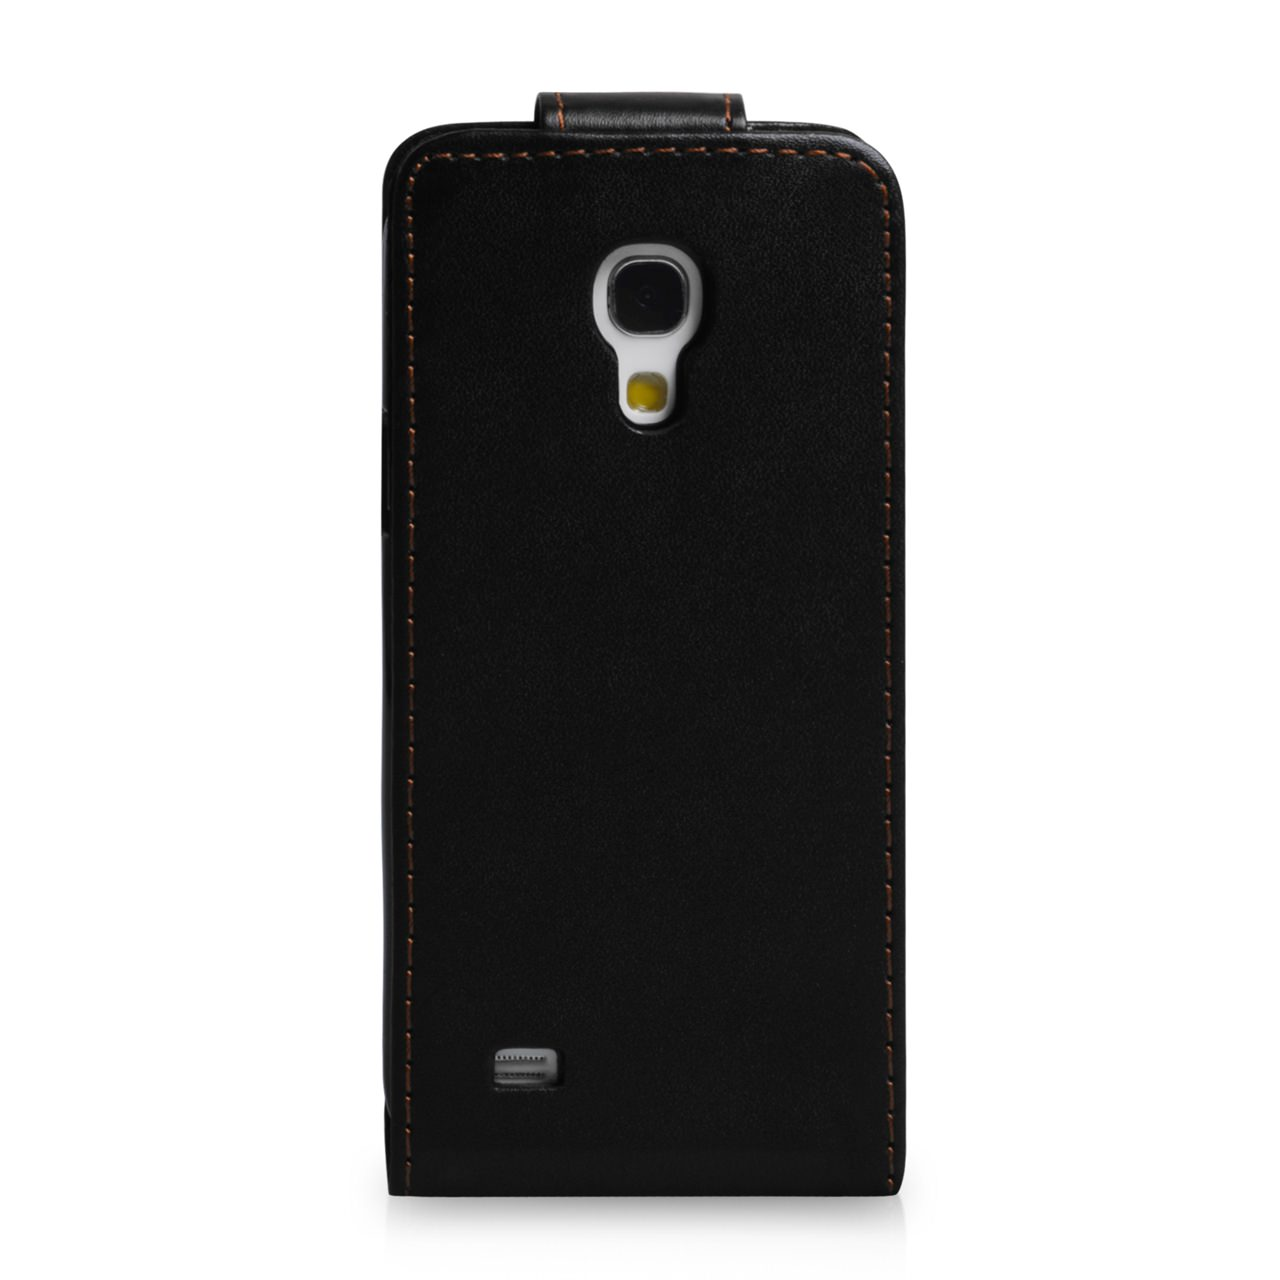 YouSave Samsung Galaxy S4 Mini Black Leather Effect Flip Case